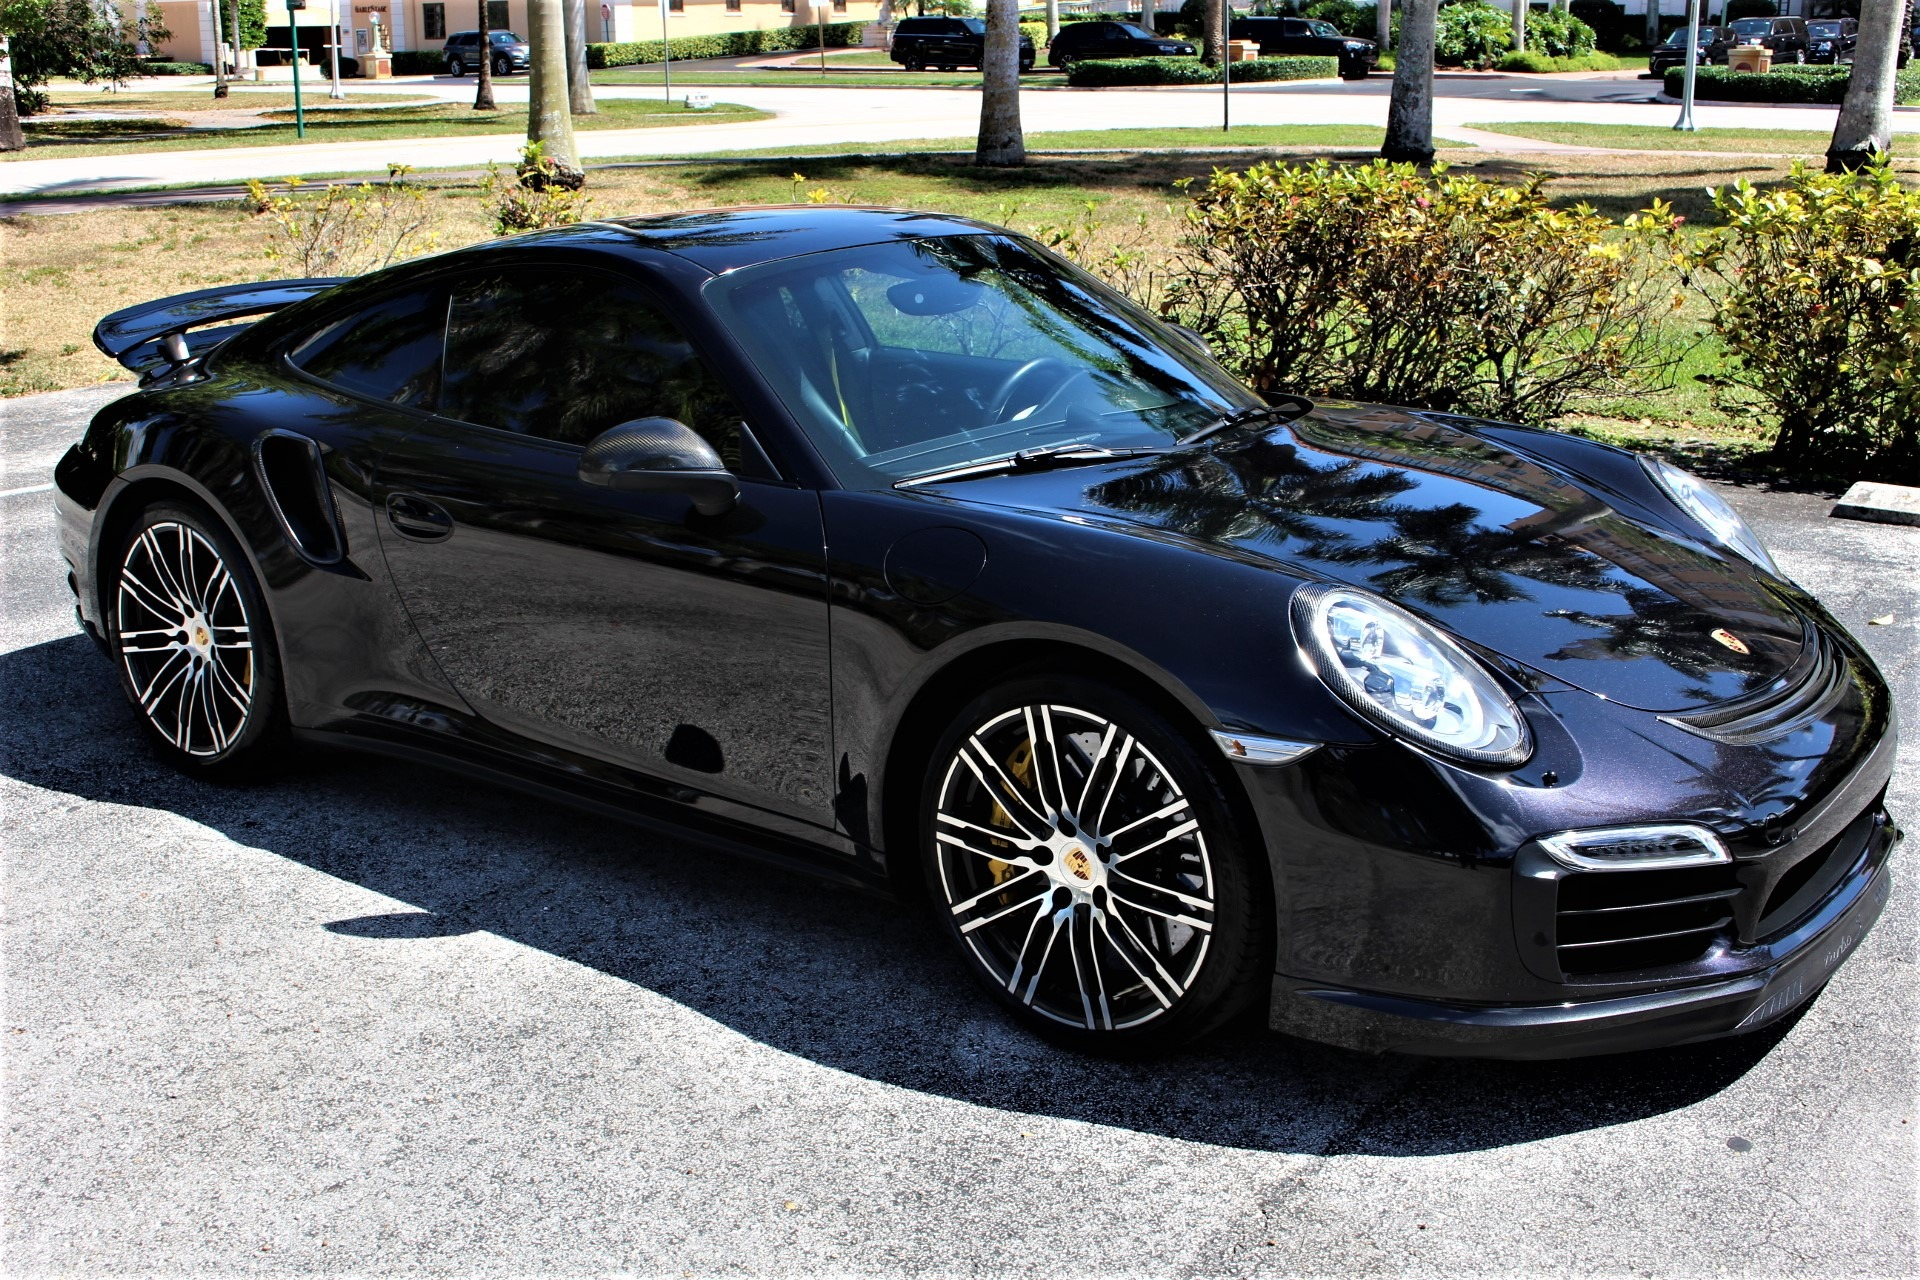 Used 2014 Porsche 911 Turbo S for sale $118,890 at The Gables Sports Cars in Miami FL 33146 4